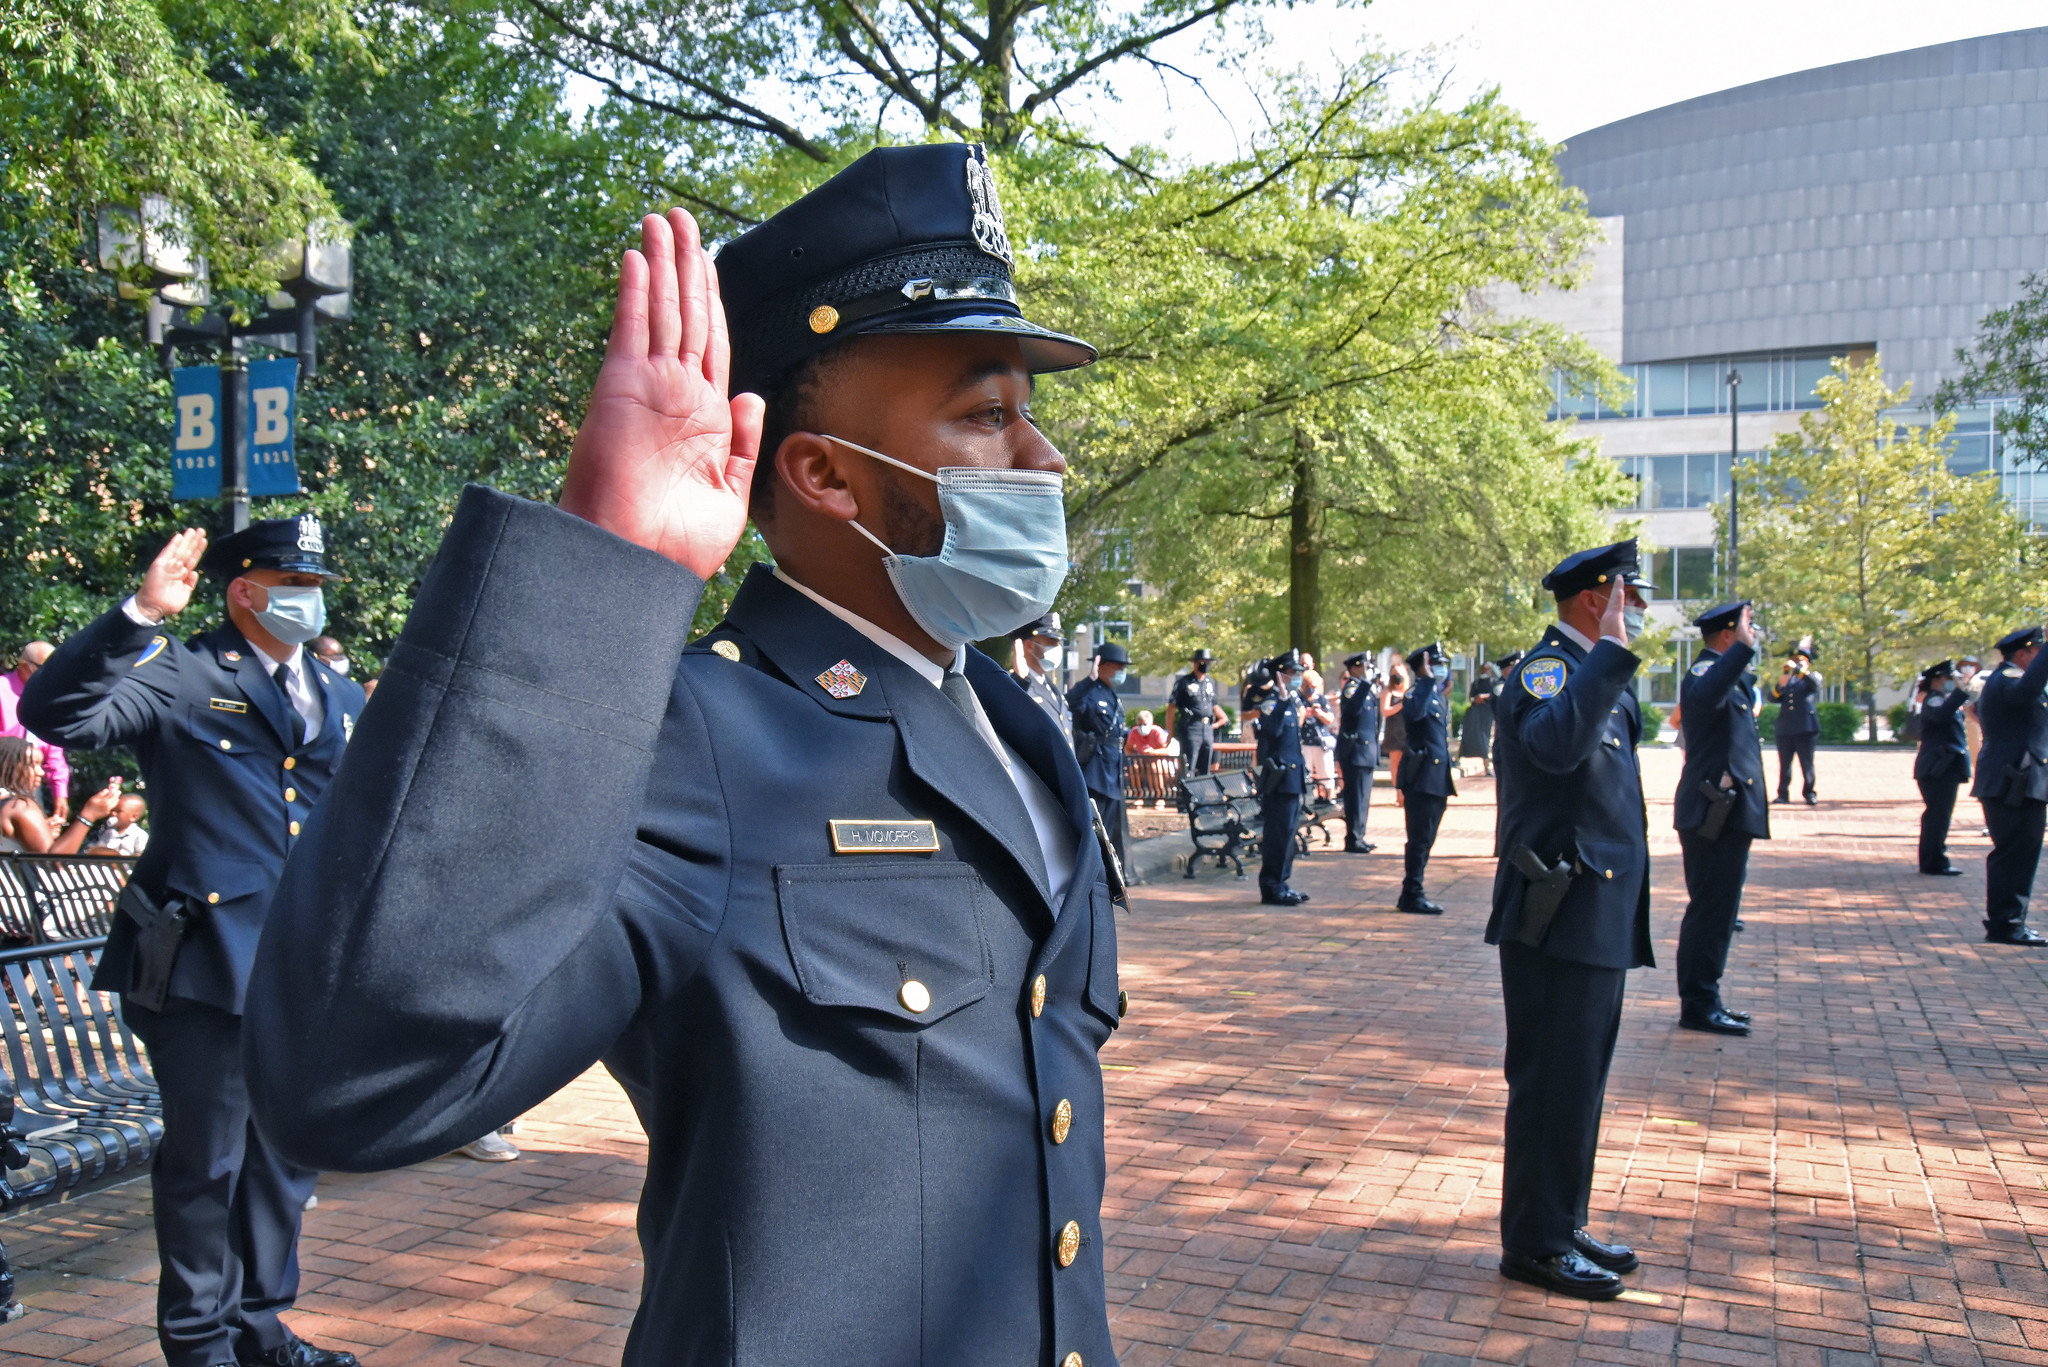 New Baltimore Police Officer at Graduation Ceremony